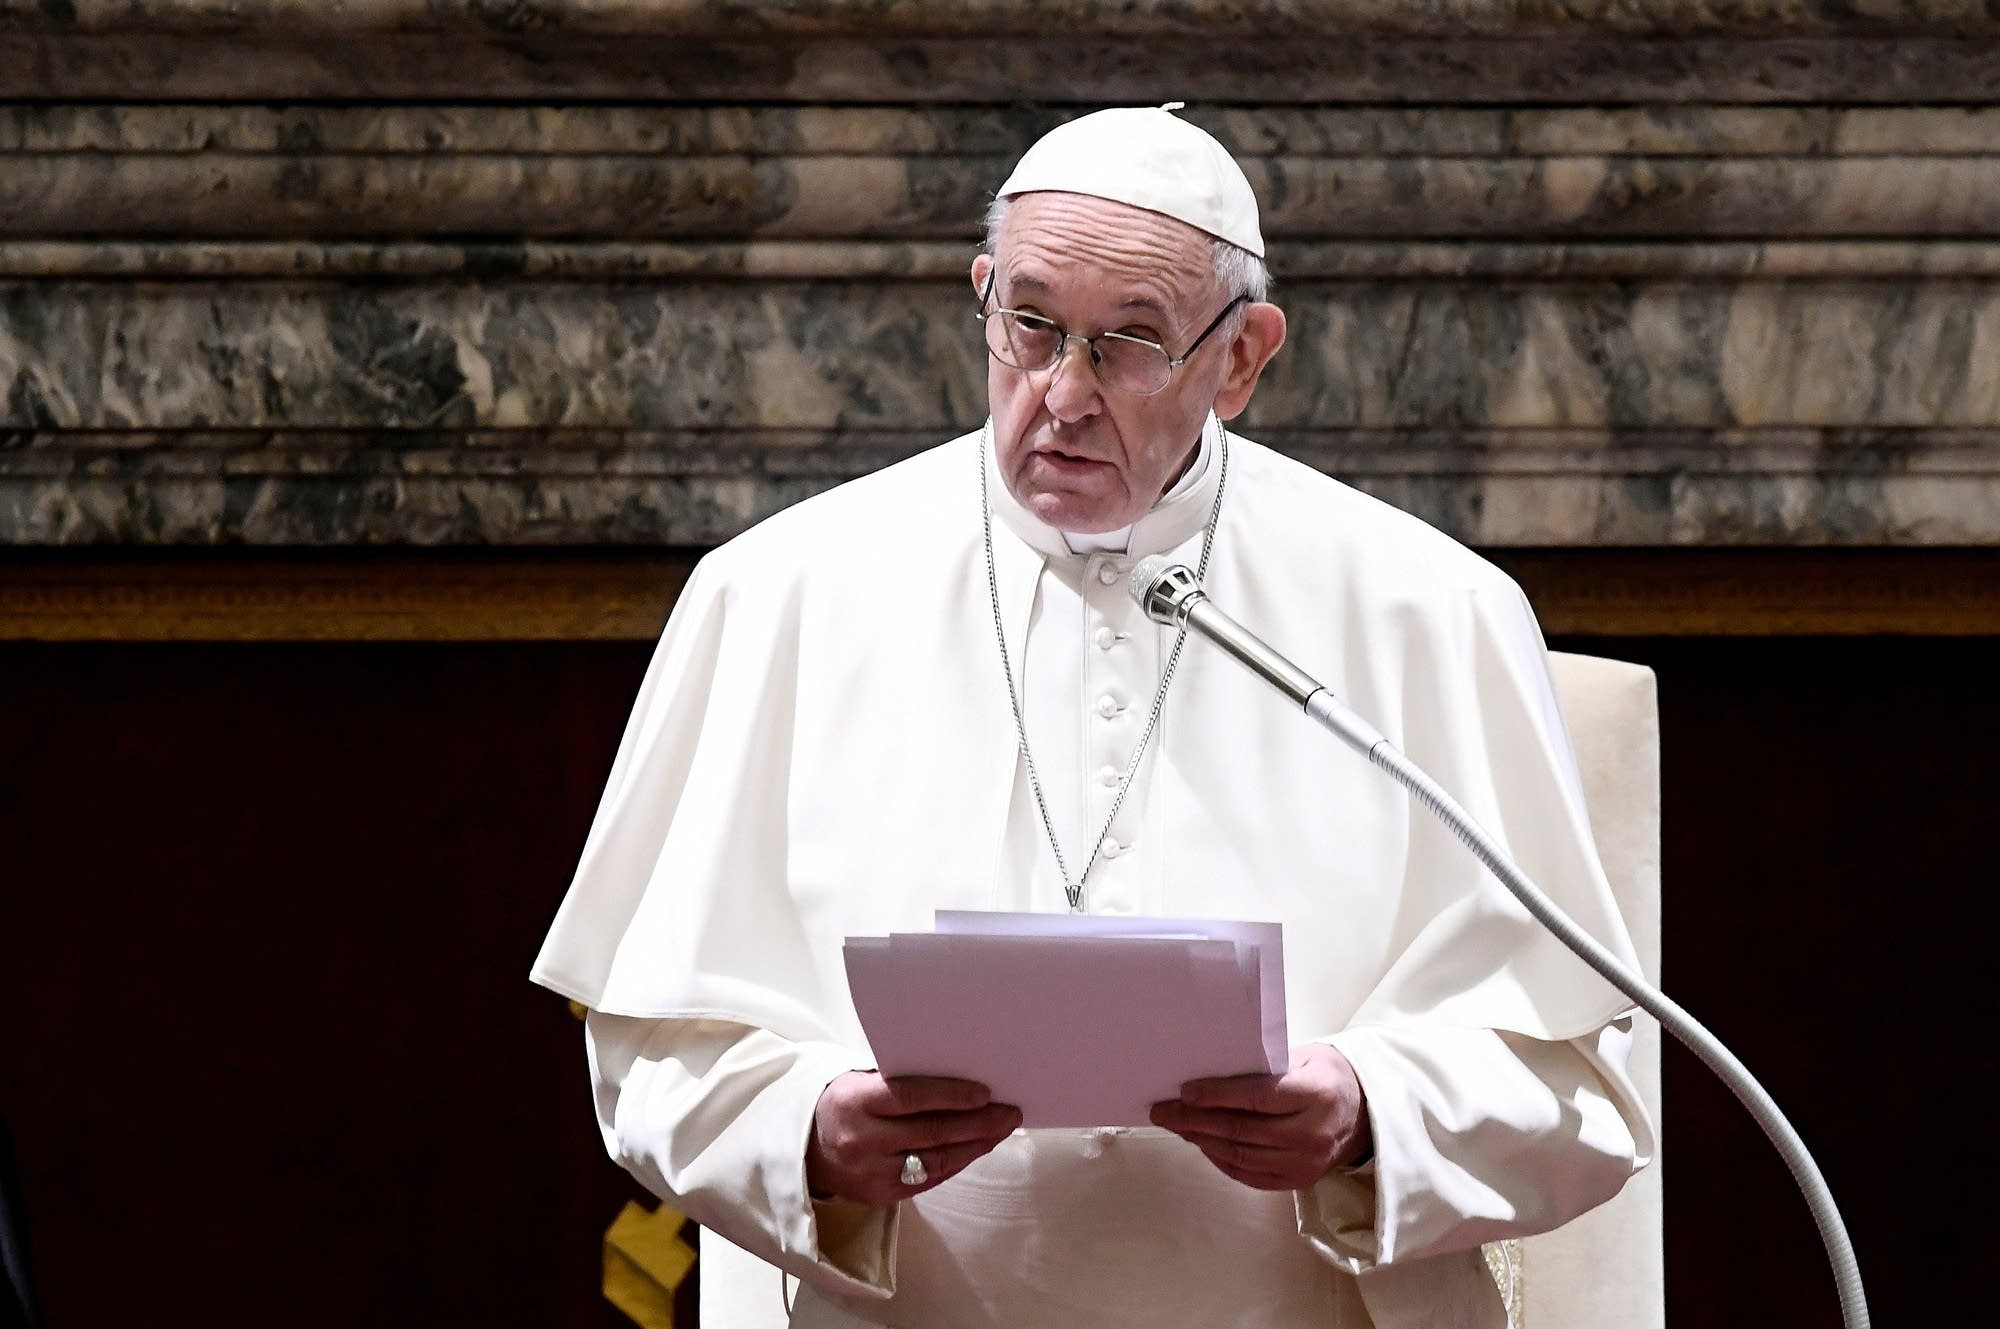 26f2c85483 Pope Francis chairs the annual address to the Church's governing Curia.